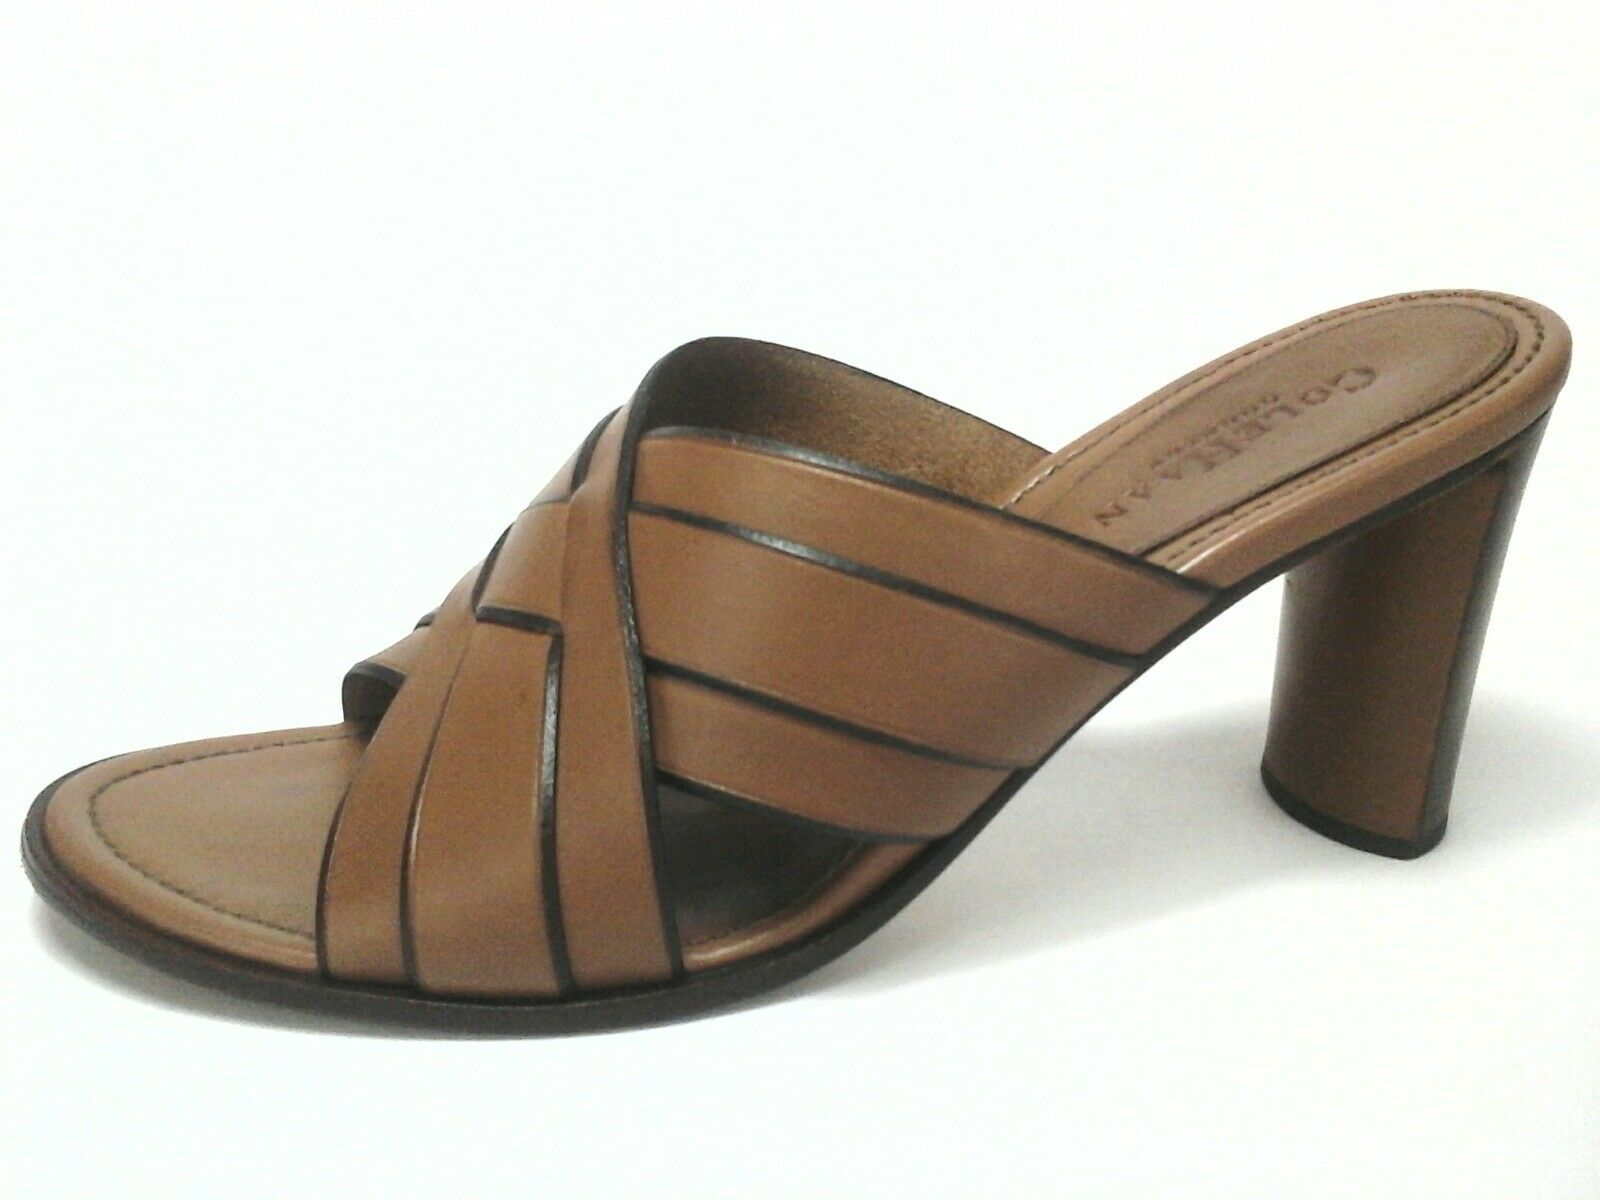 COLE HAAN Country Sandals shoes Tan Brown Slip On Women's US 9 39.5  160